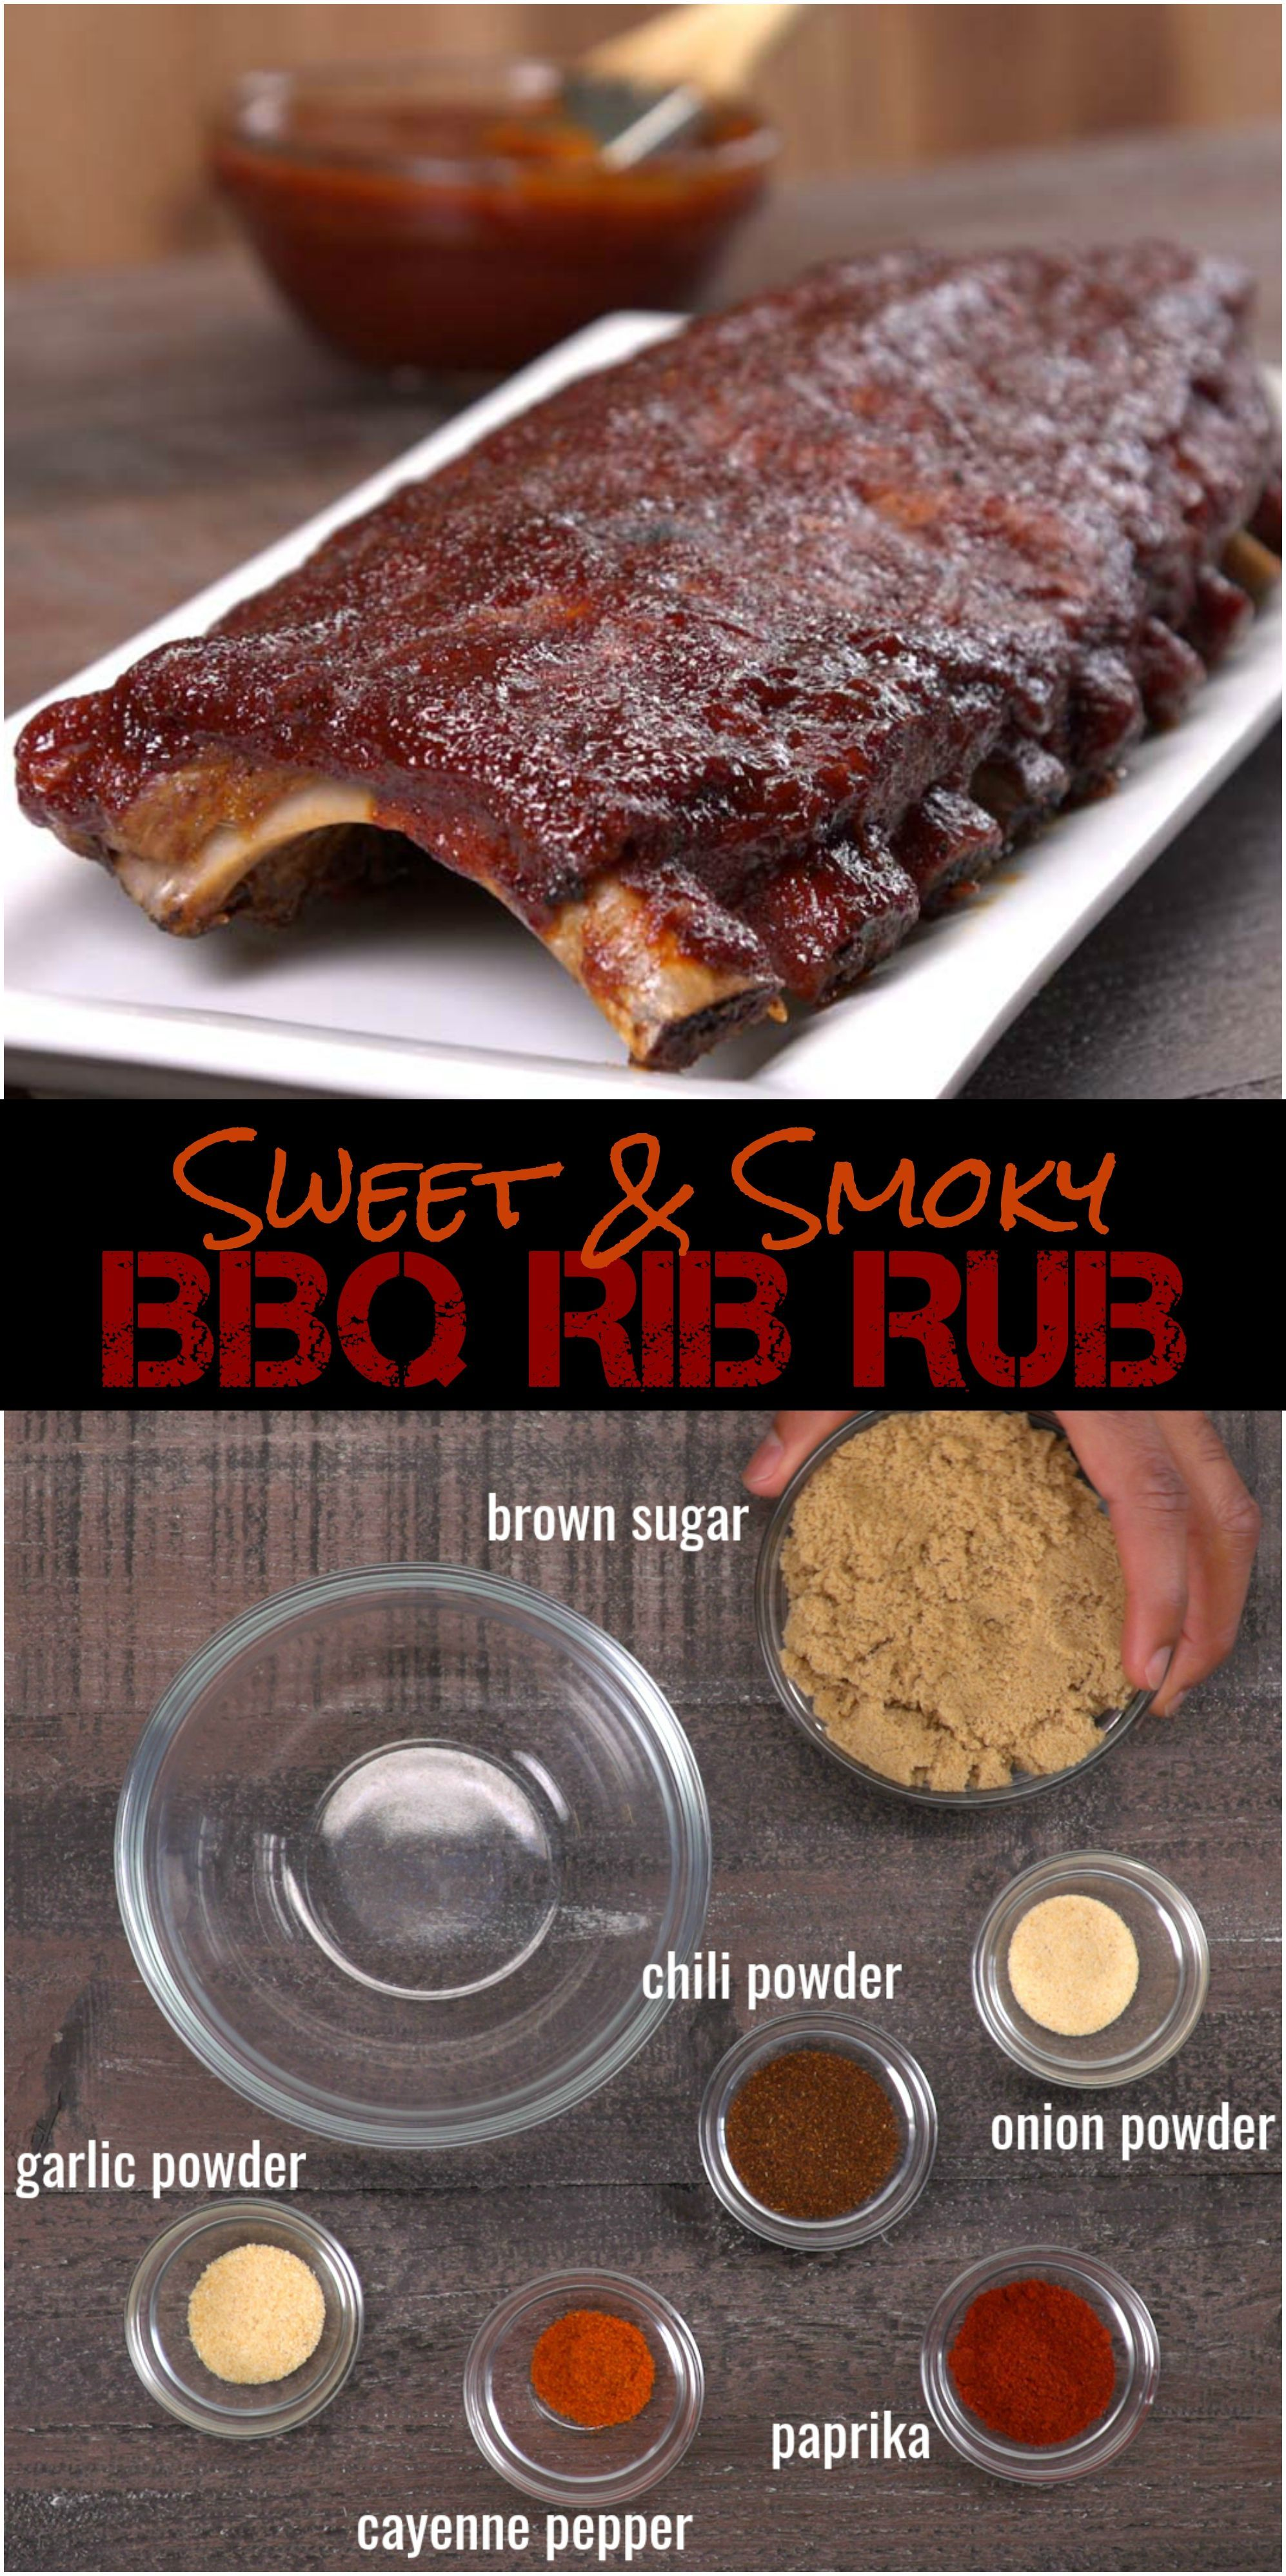 Oven Baked Bbq Ribs With Homemade Rib Rub Bbq Sauce Recipe